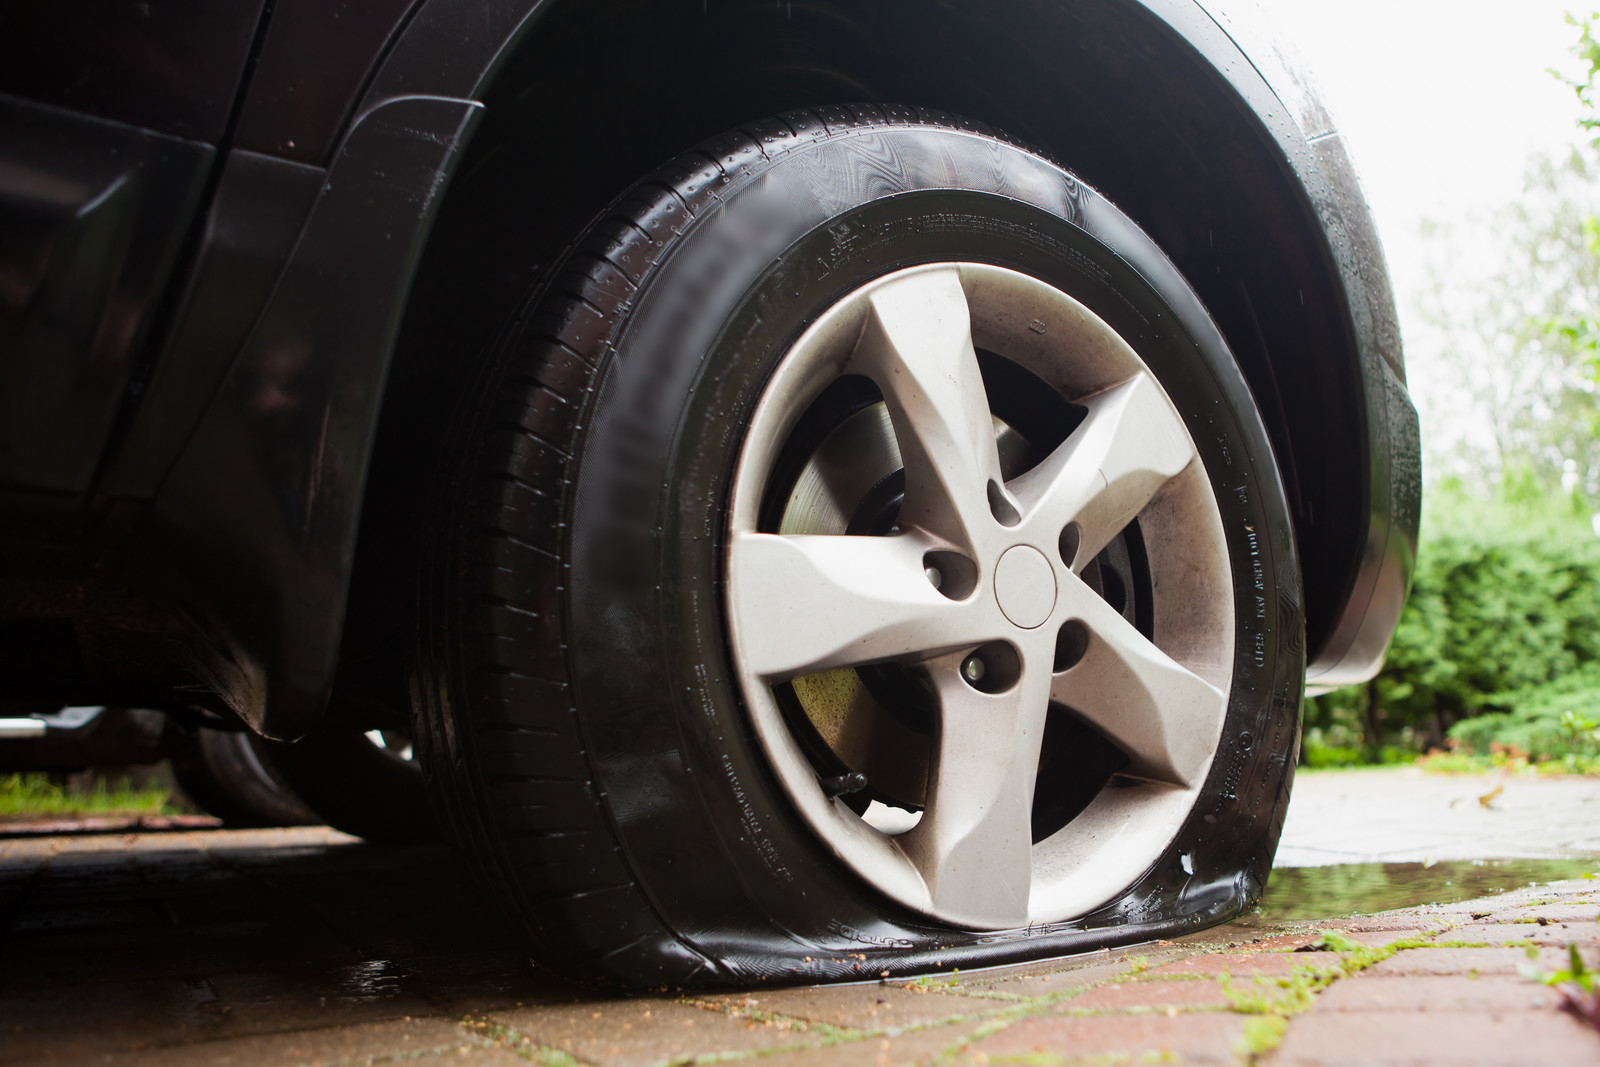 Tyre puncture due to pothole